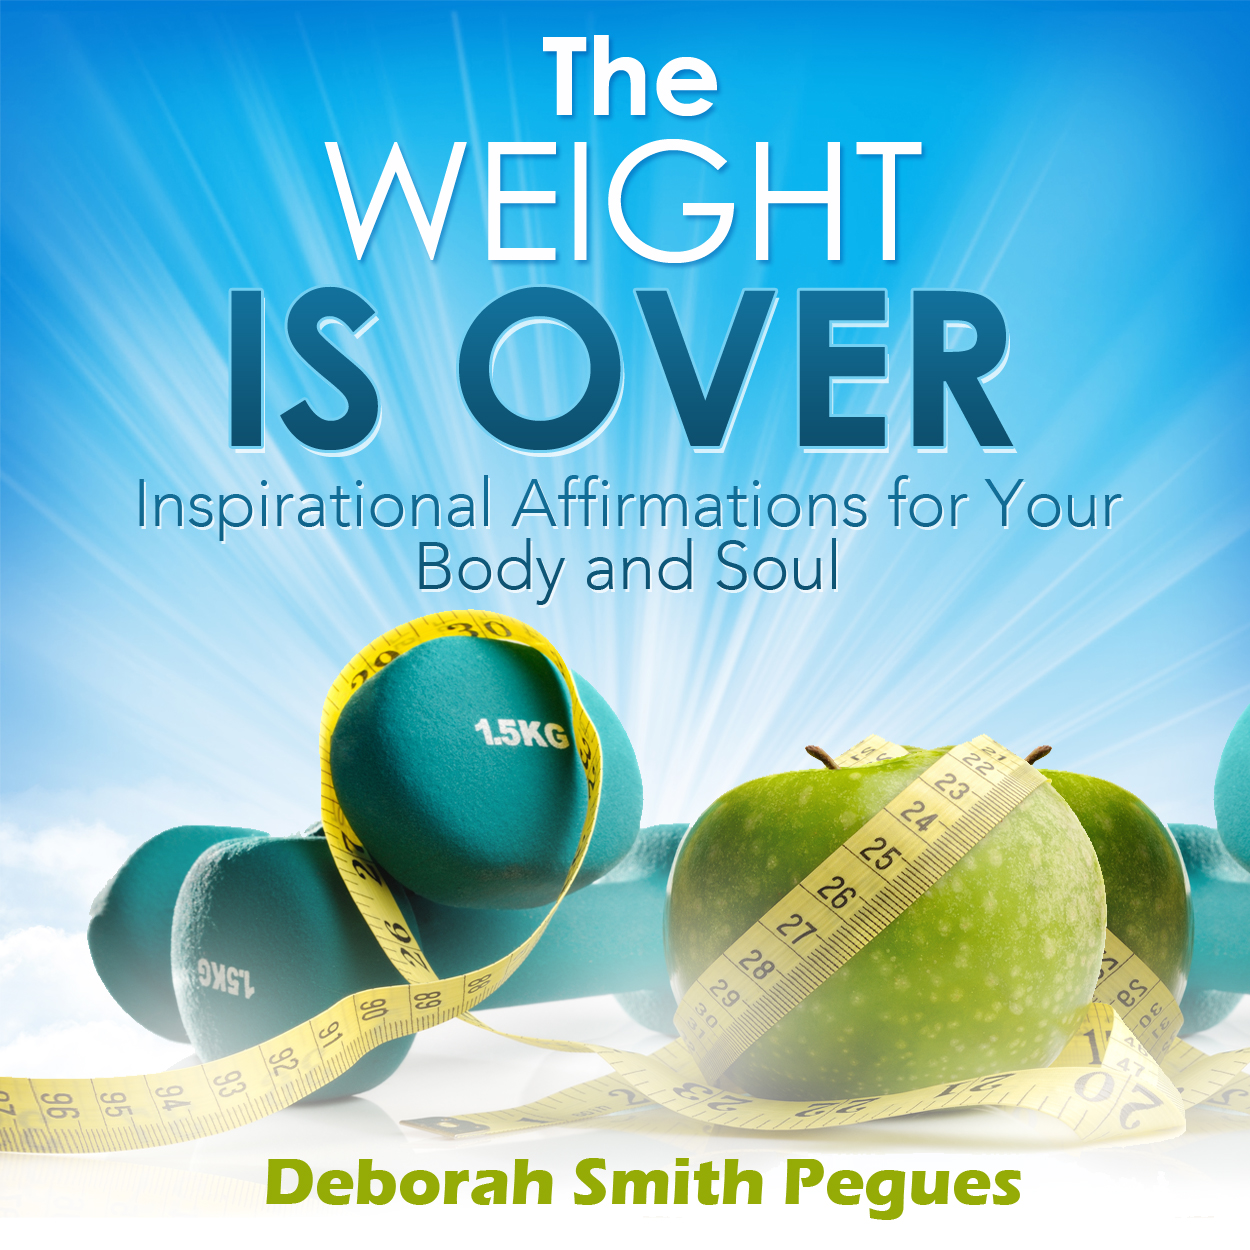 The Weight is over logo image